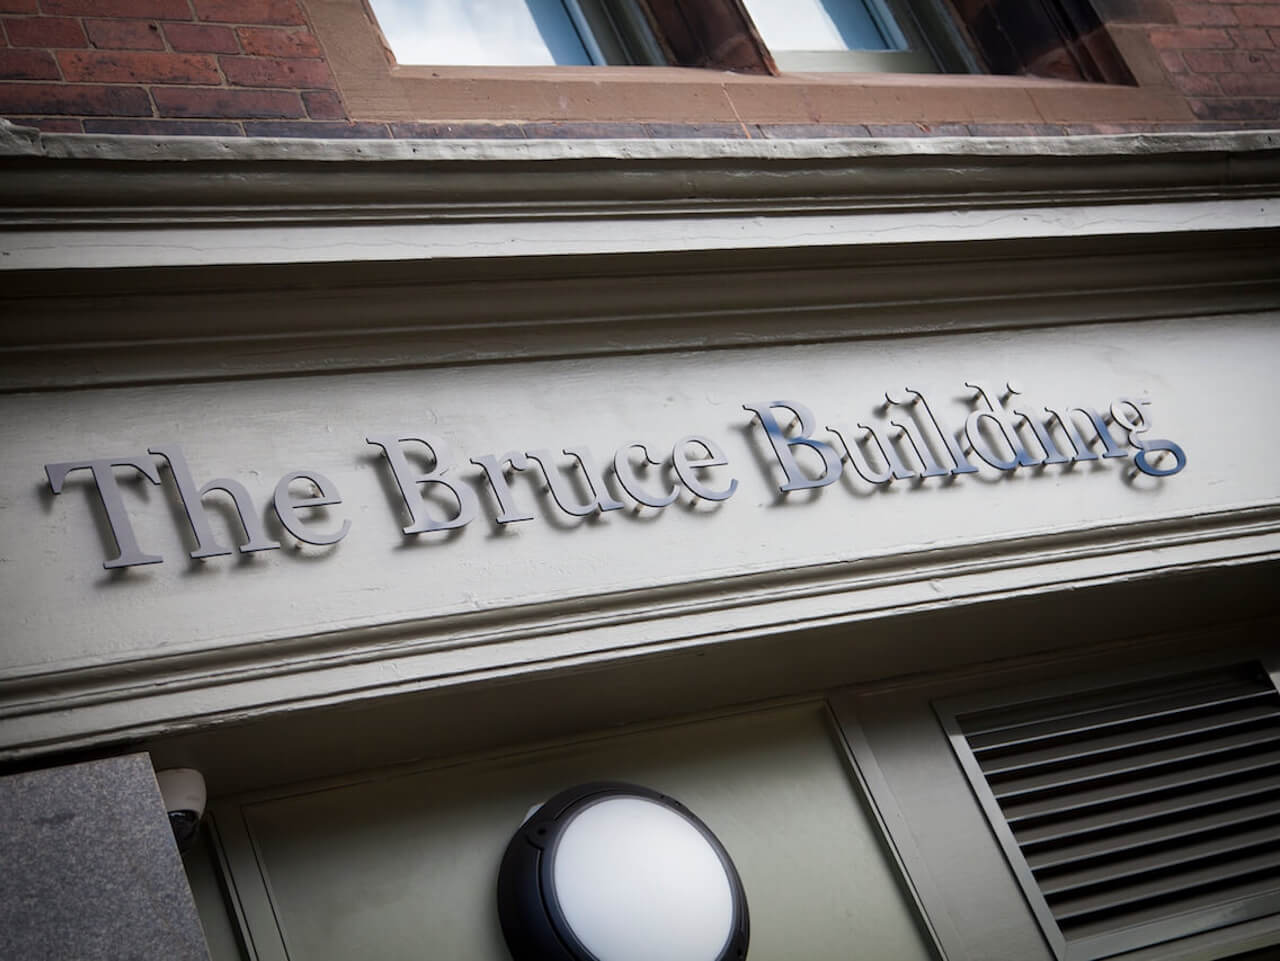 The Bruce Building external sign above the entrance